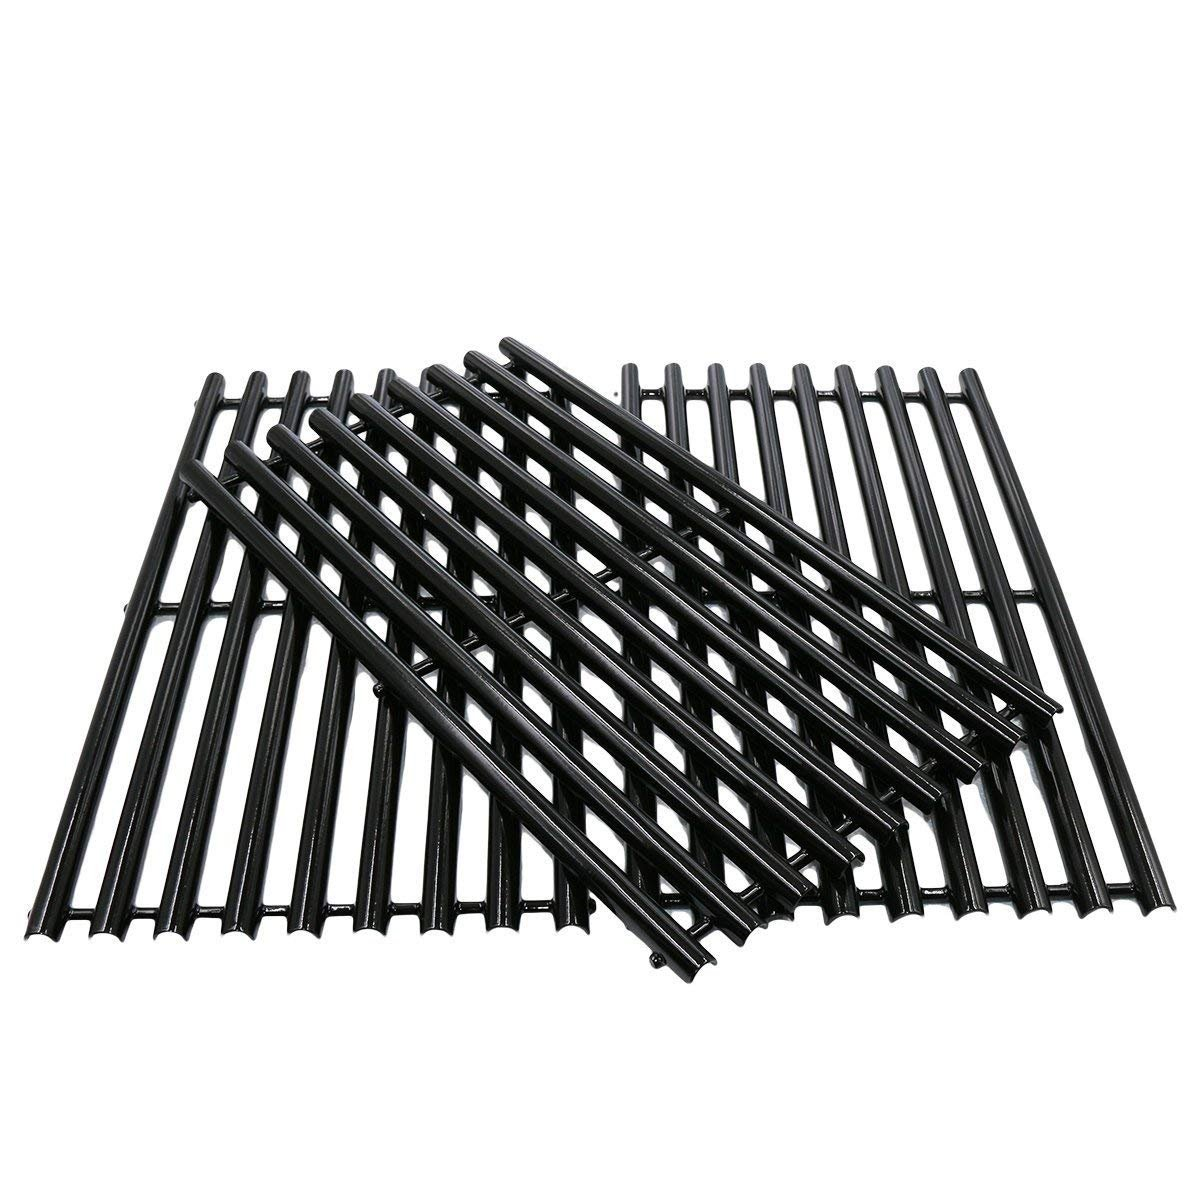 BBQration Porcelain Steel Cooking Grid Replacement for Gas Grill Models Uniflame GBC1059WB and Uniflame GBC1059WE-C, Set of 3